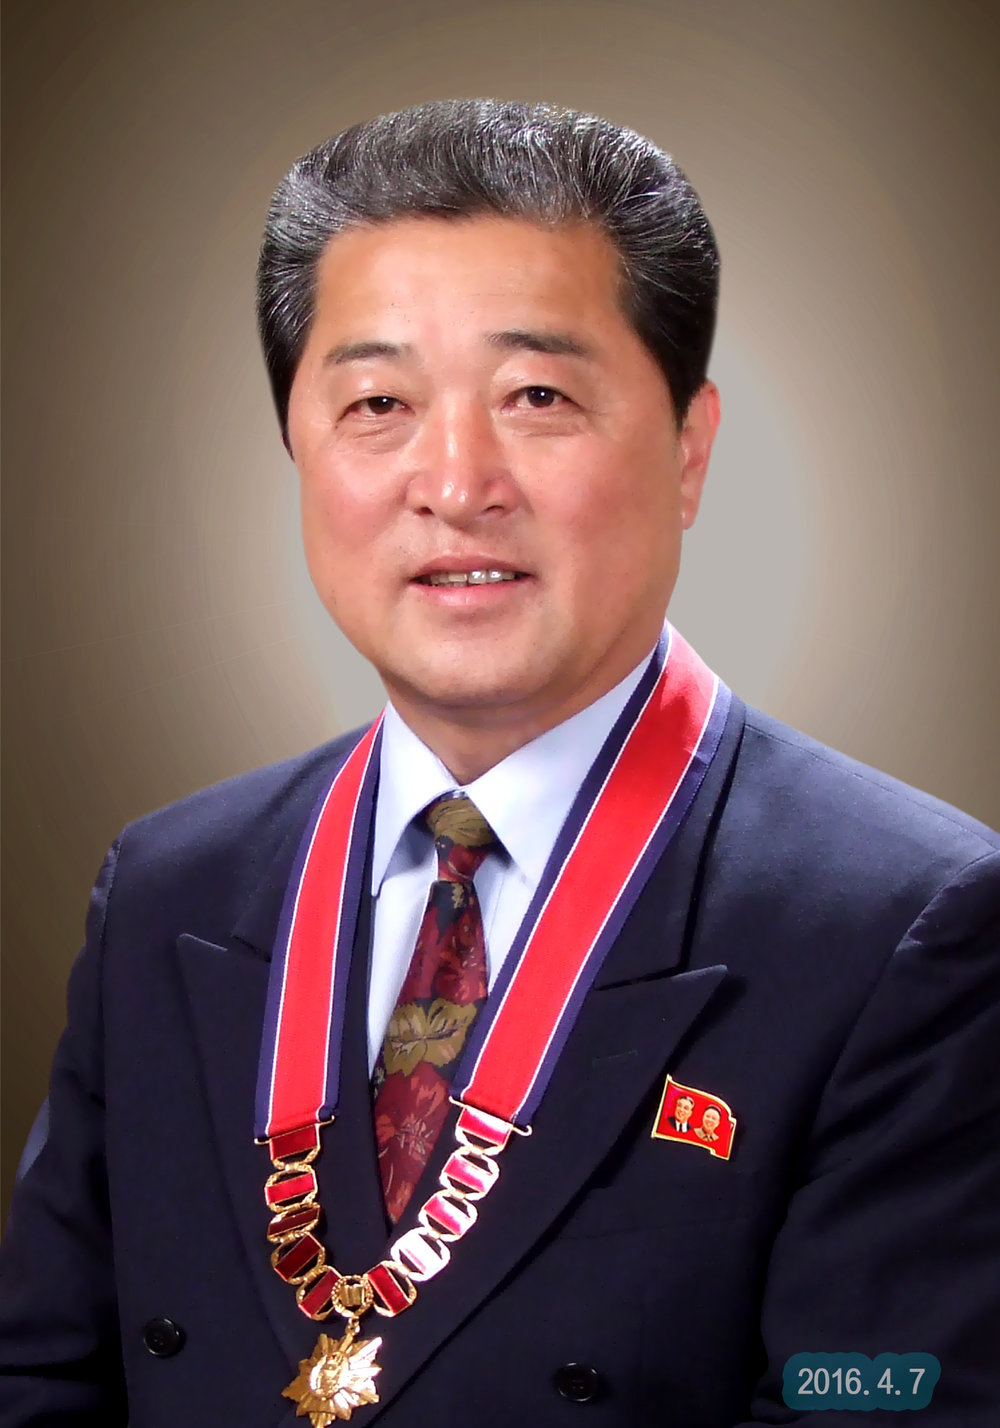 Dr. Jong Sang Hun, PhD, PHF, Honorary Member of the Rotary Club of Charlottetown Royalty.